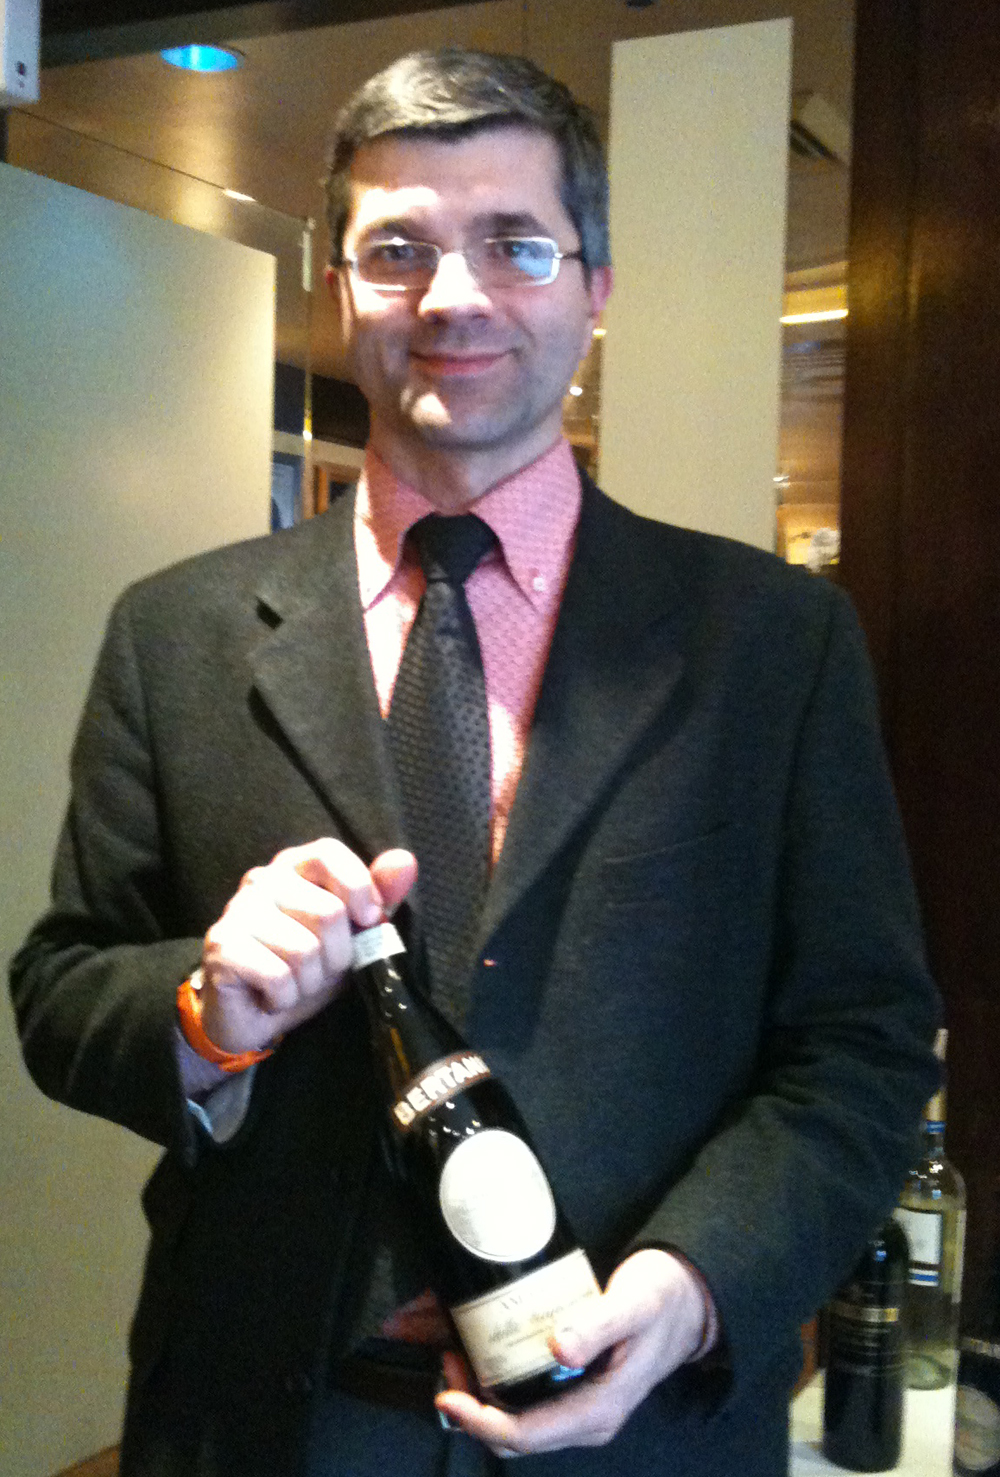 Winemaker Cristian Ridolfi presents Bertani Amarone in D.C.